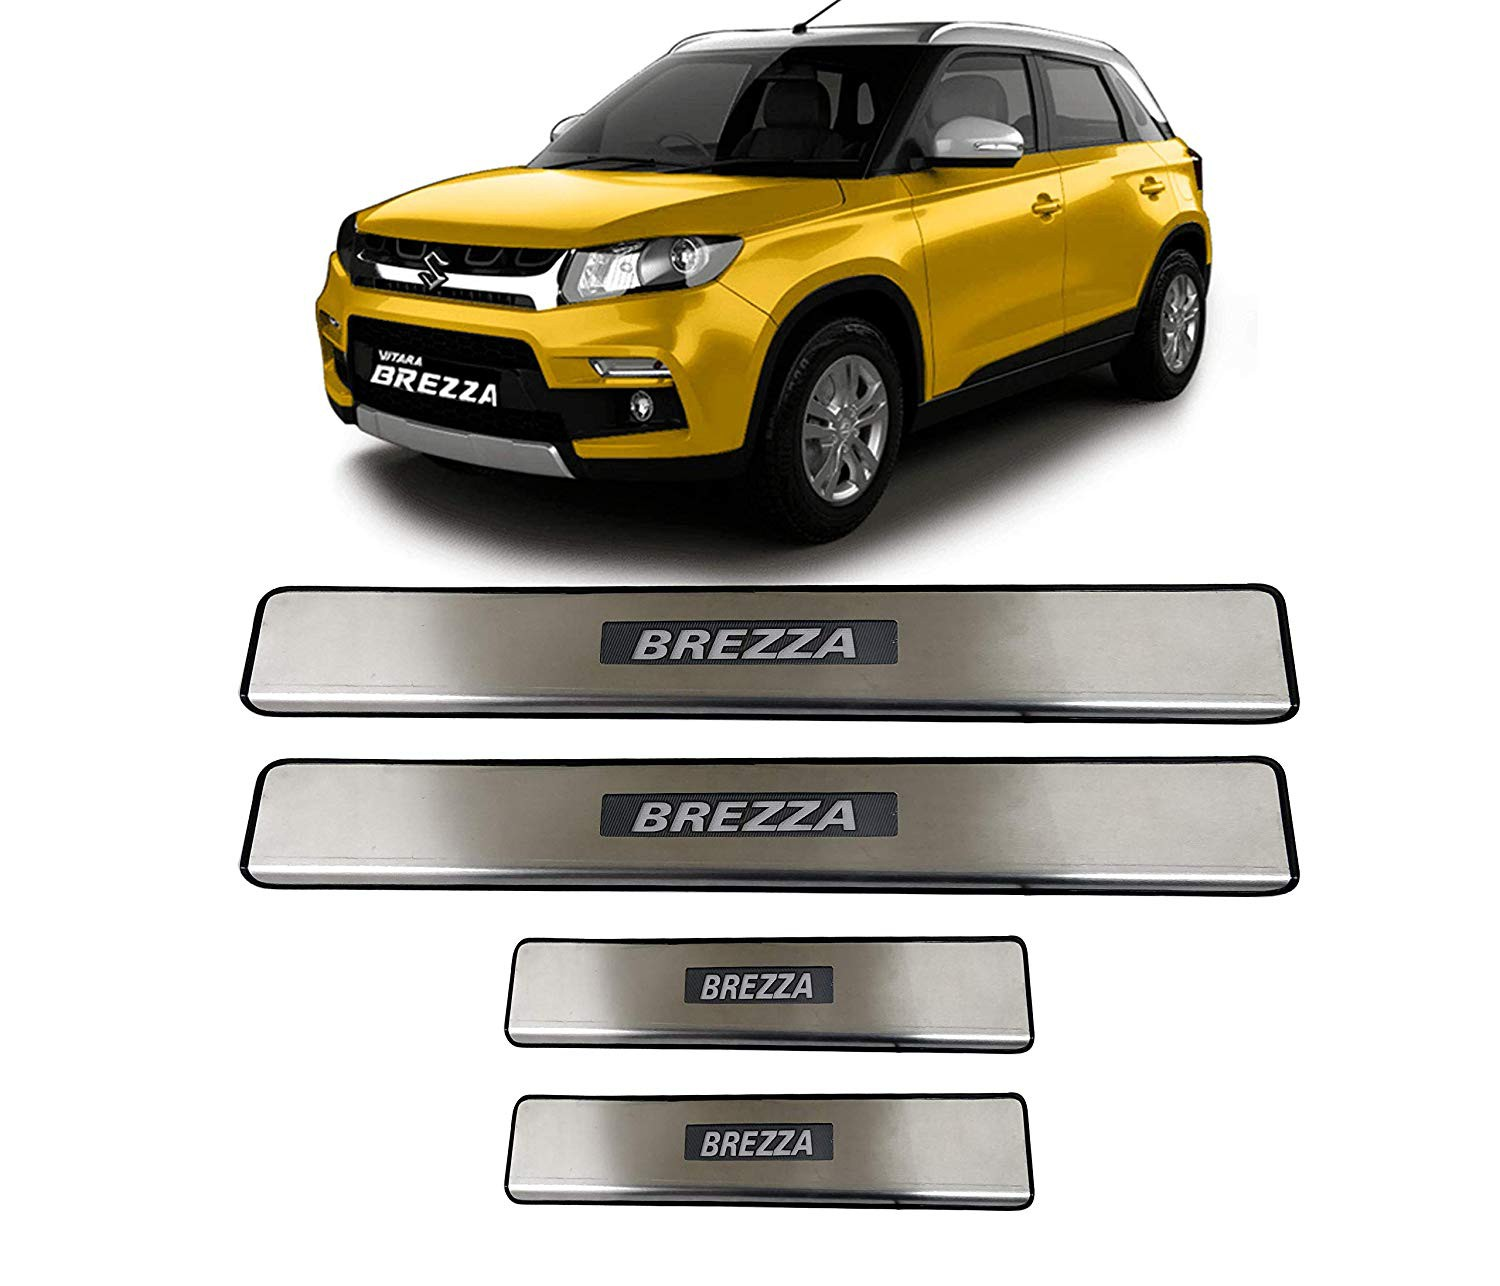 led-footstep-door-sill-plate-for-maruti-suzuki-brezza-with-fuse-blue-set-of-4pc